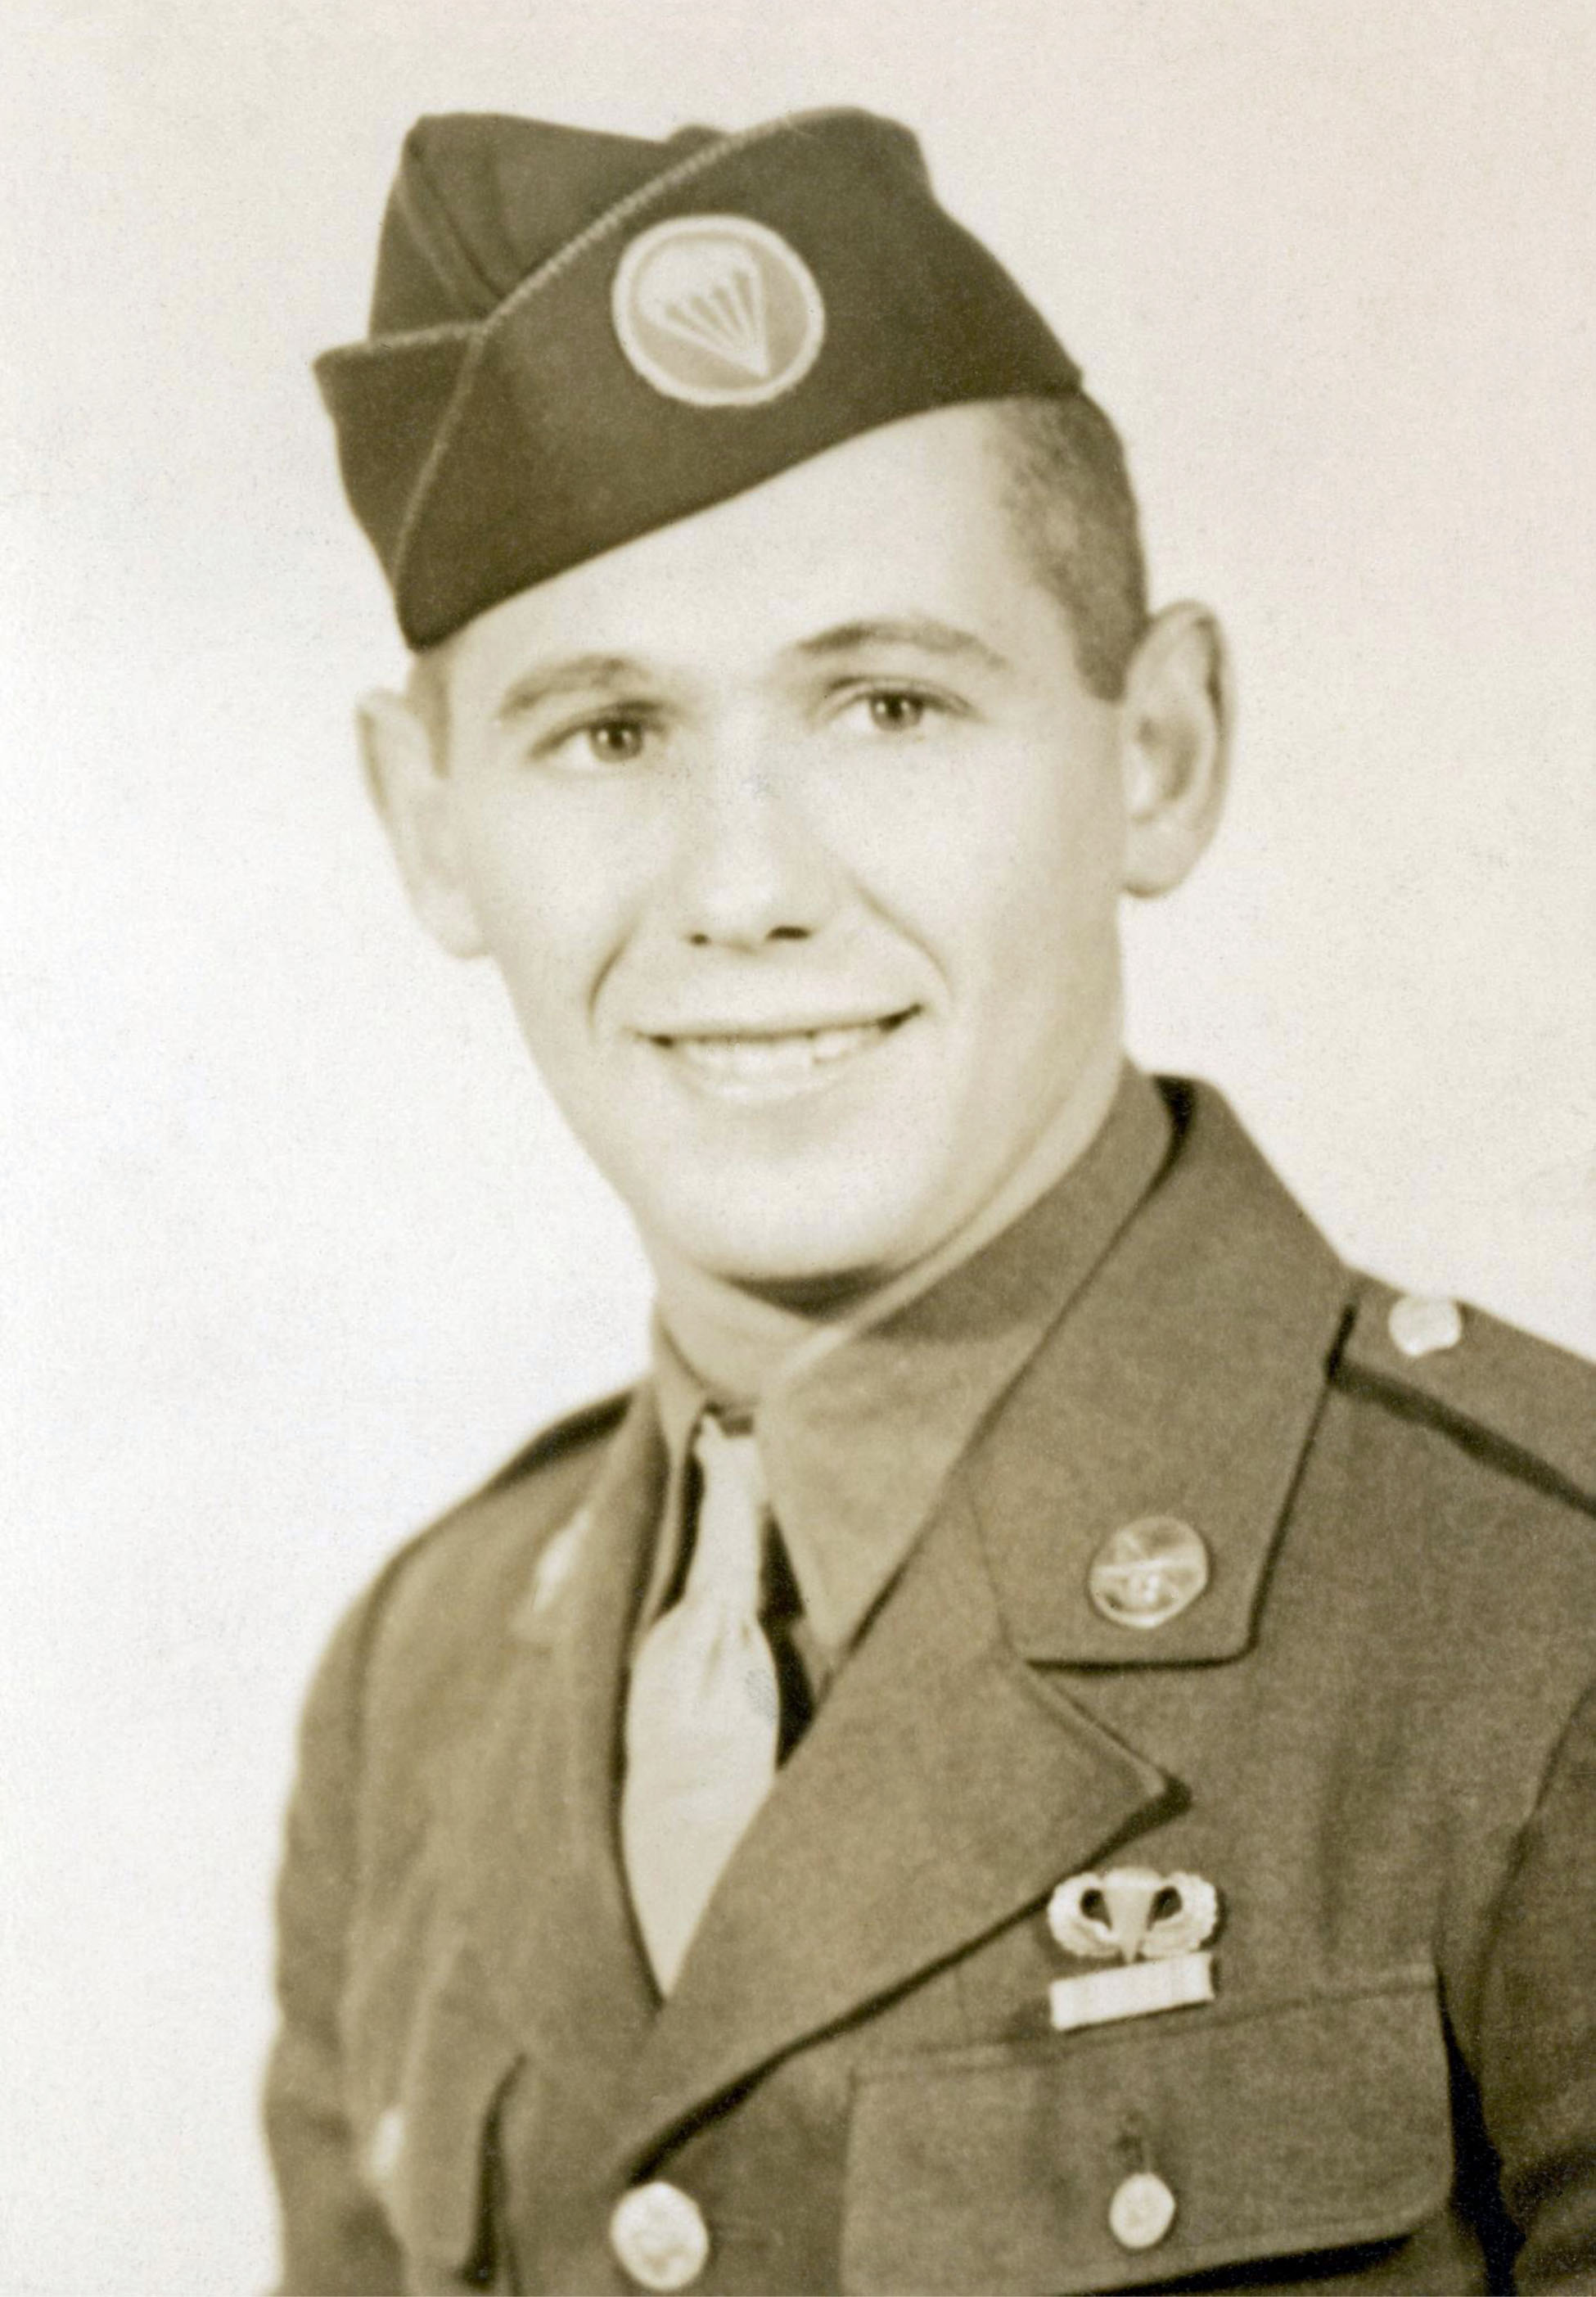 Staff Sergeant George Sipple - A Battery